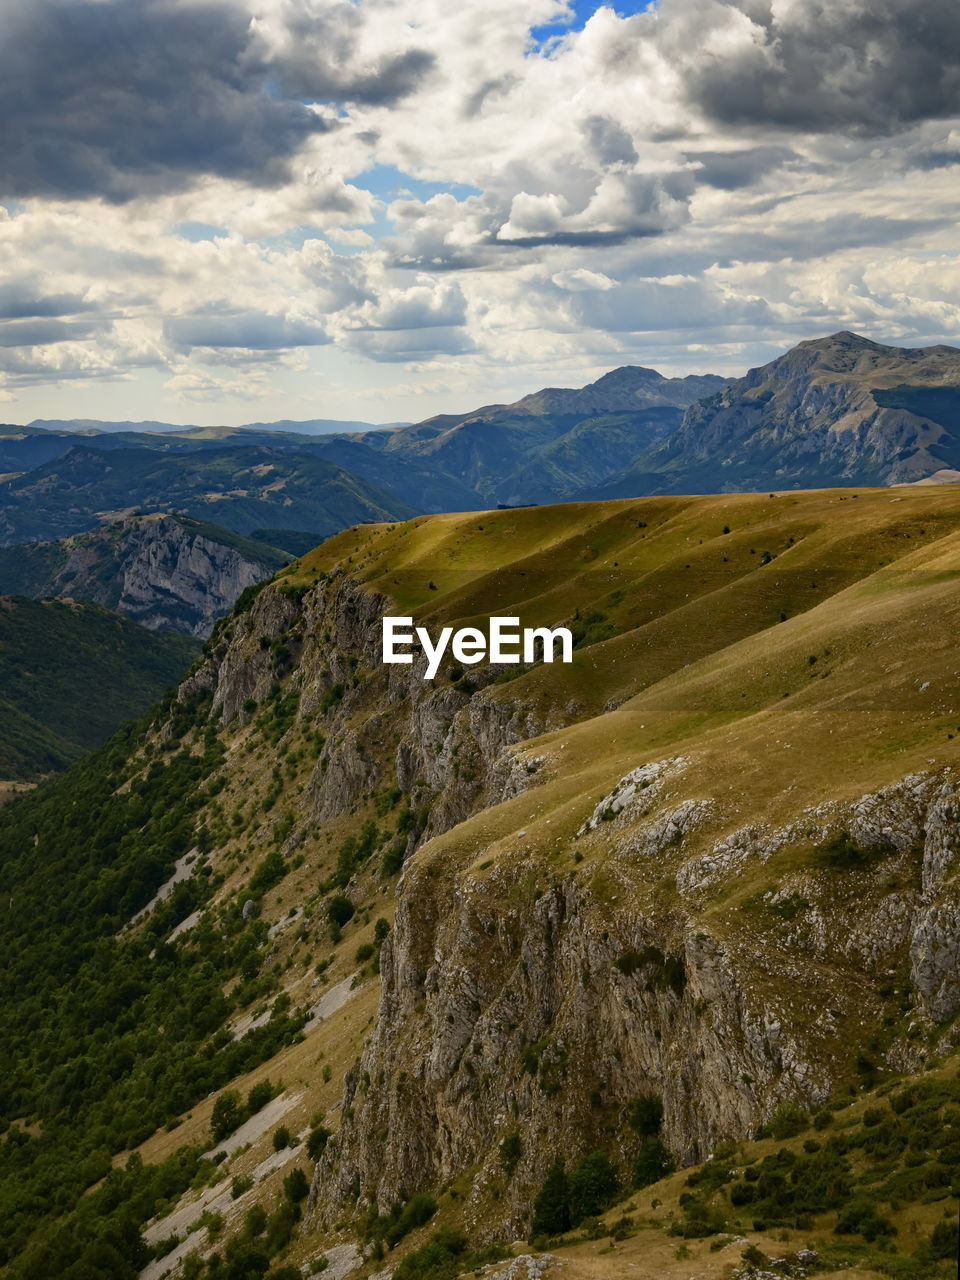 SCENIC VIEW OF VALLEY AND MOUNTAIN AGAINST SKY